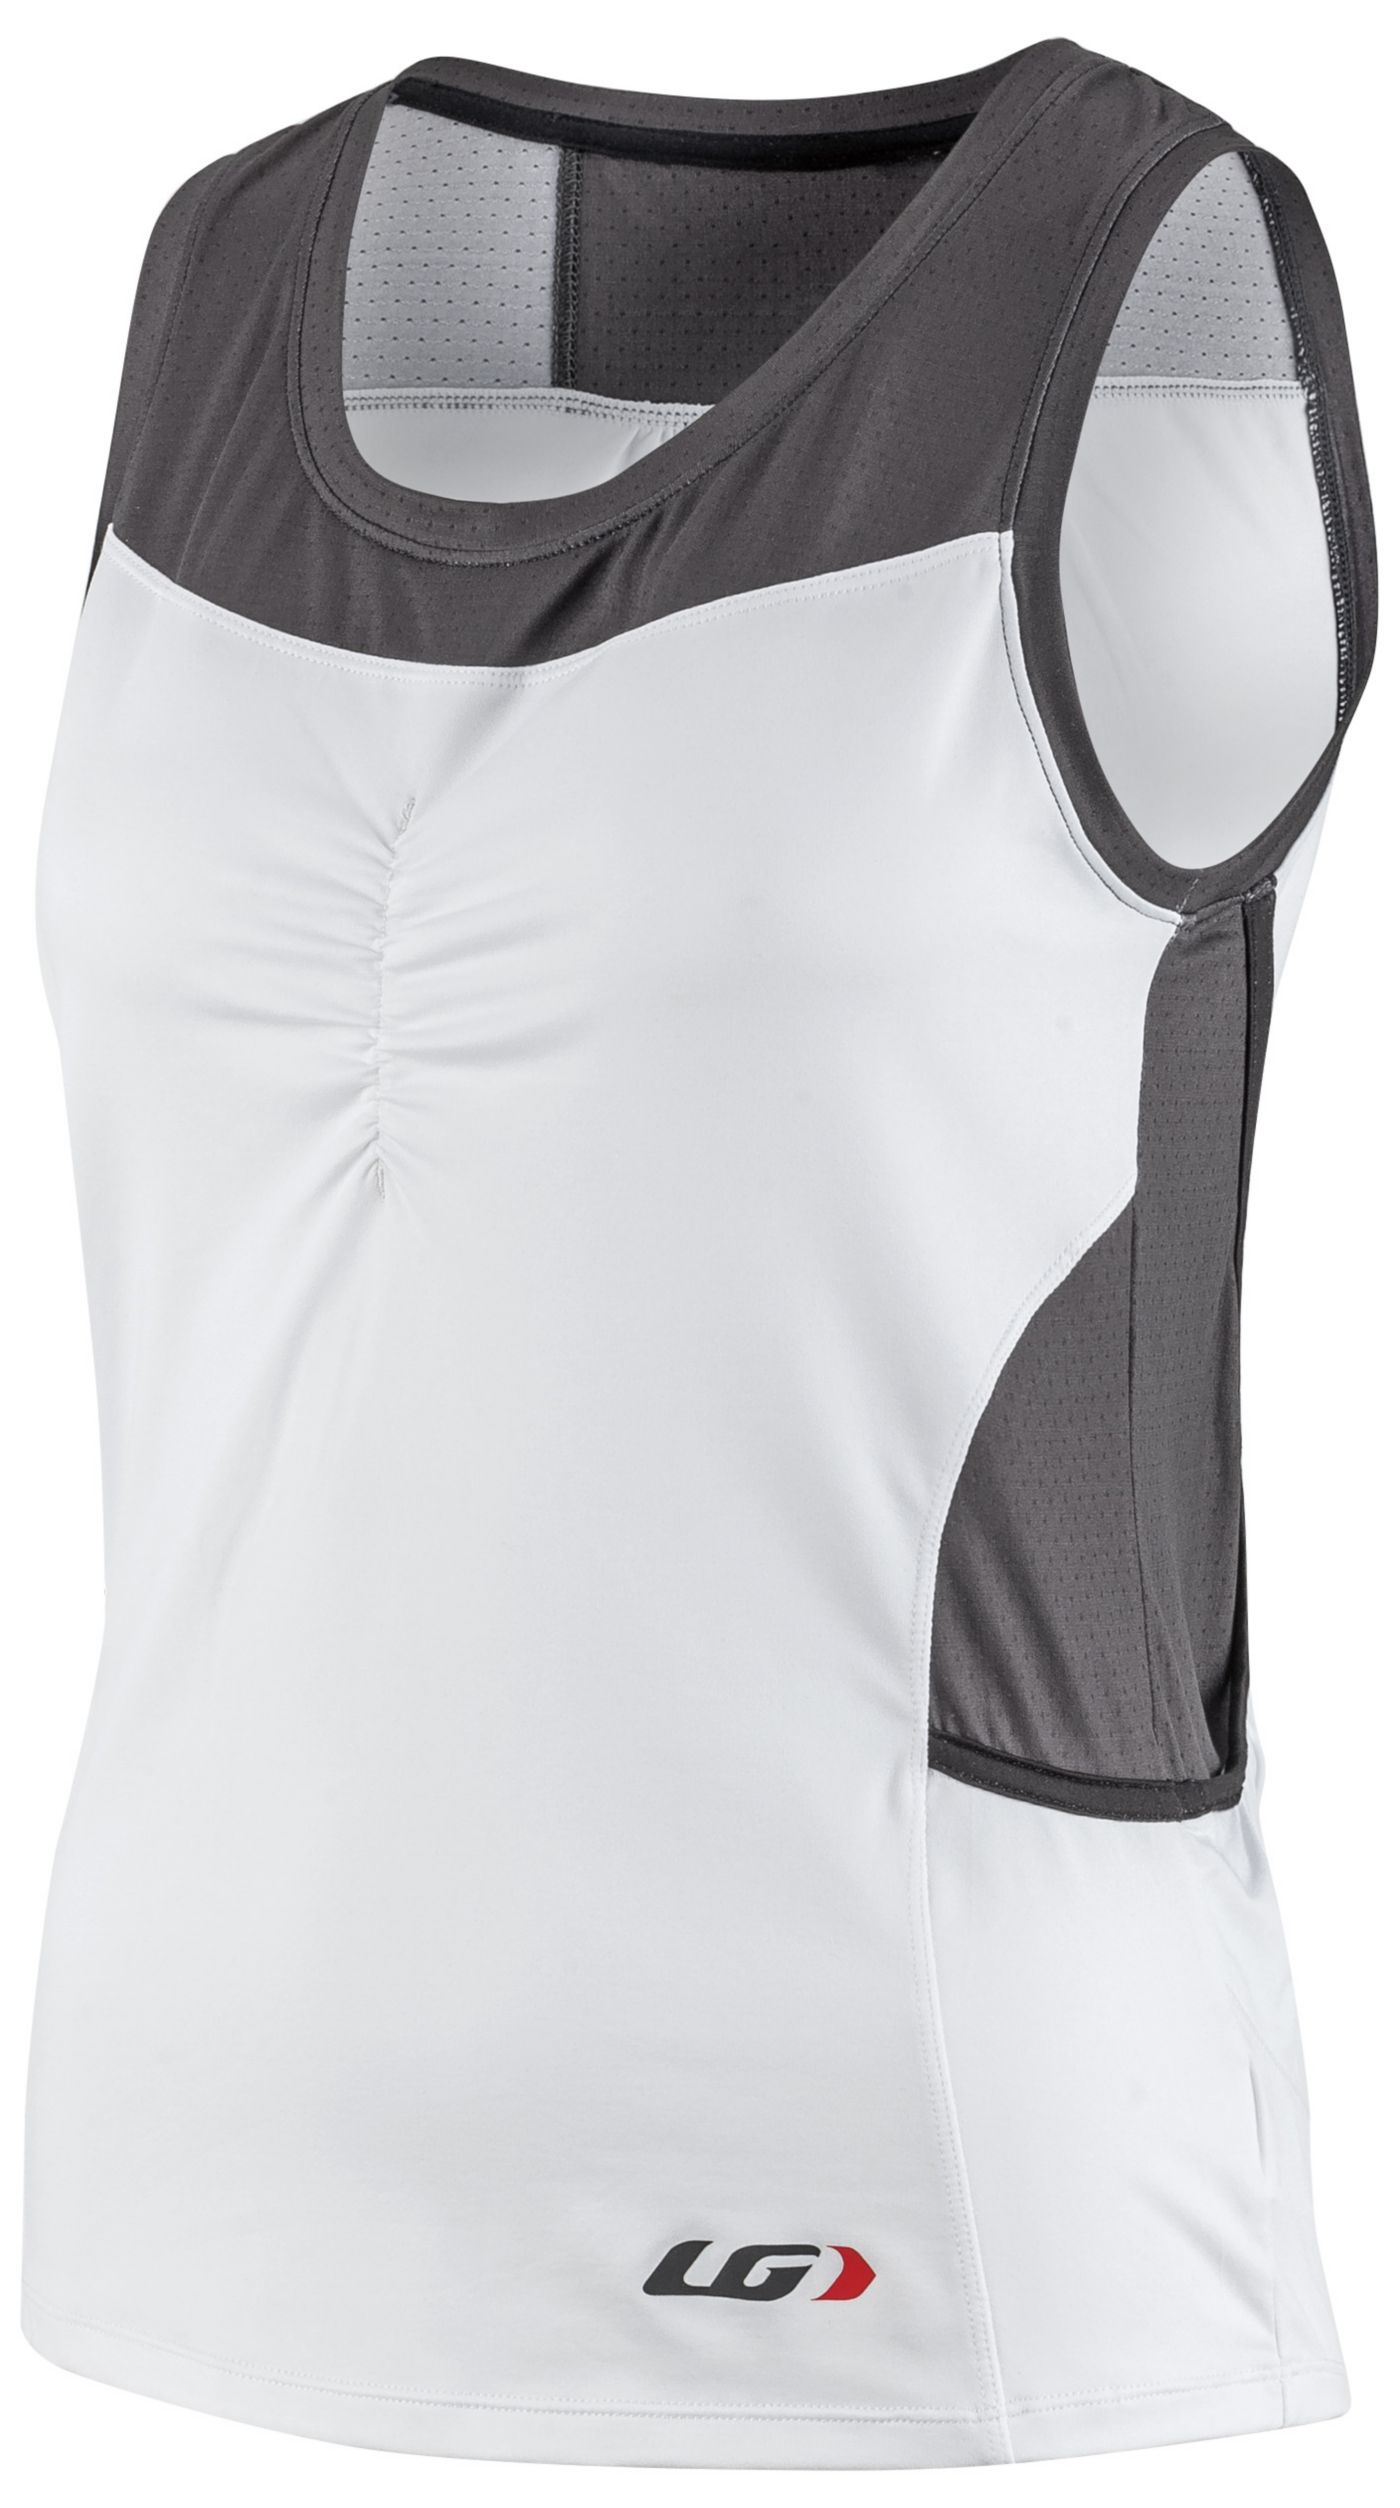 Louis Garneau Women's Emilia Cycling Tank Top